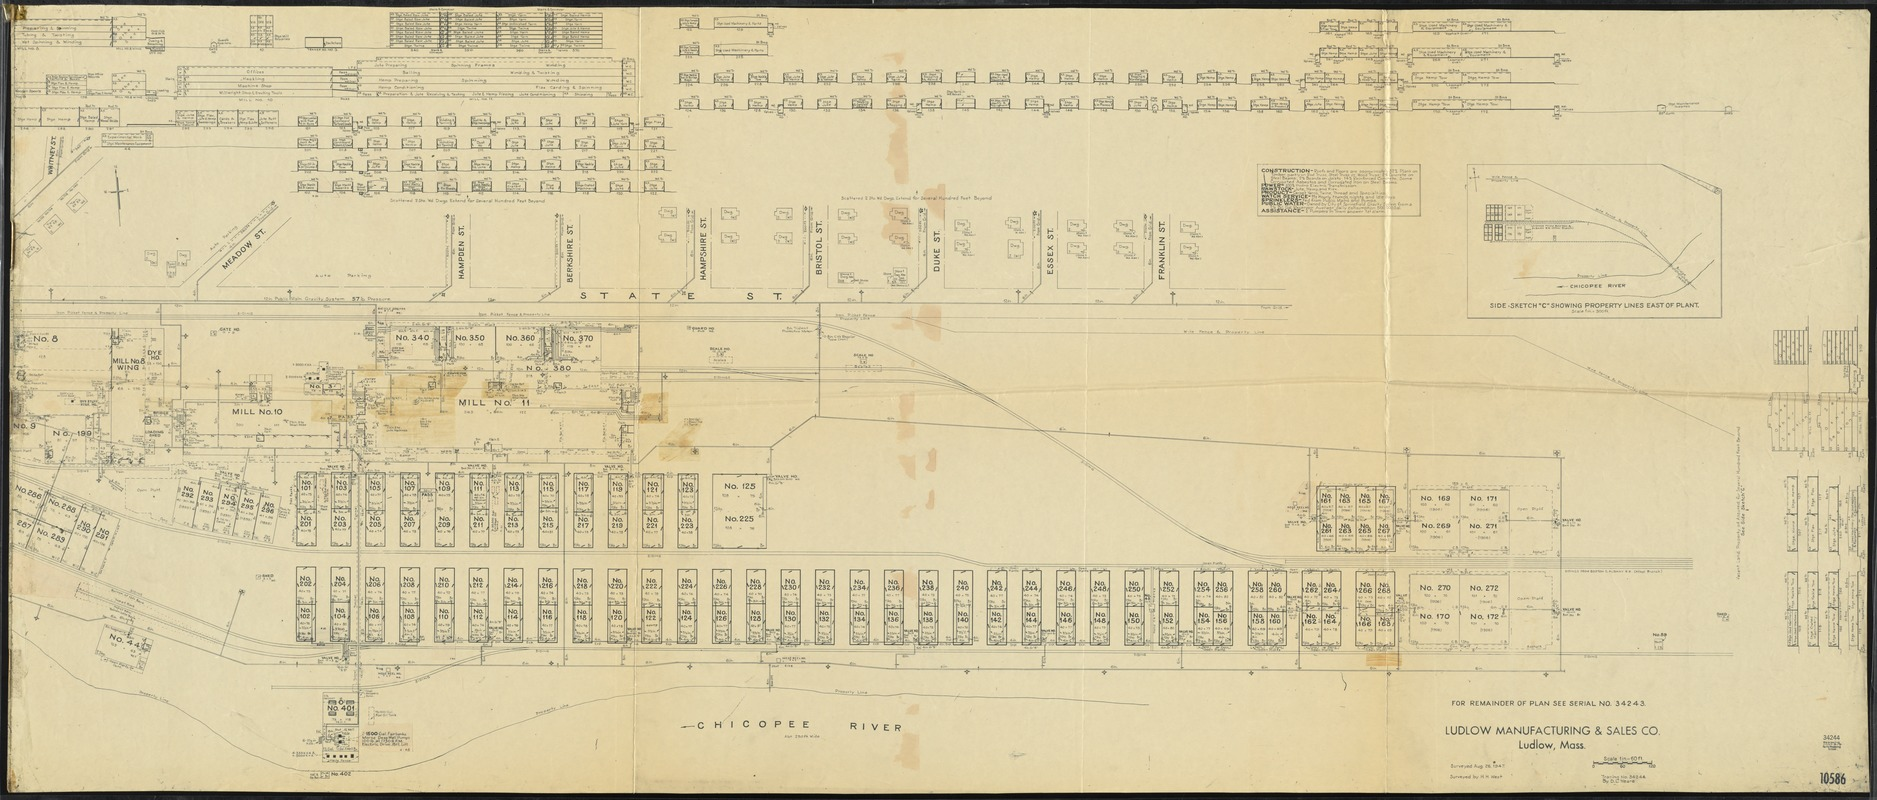 Ludlow Manufacturing & Sales Co., Ludlow, Mass. [insurance map]